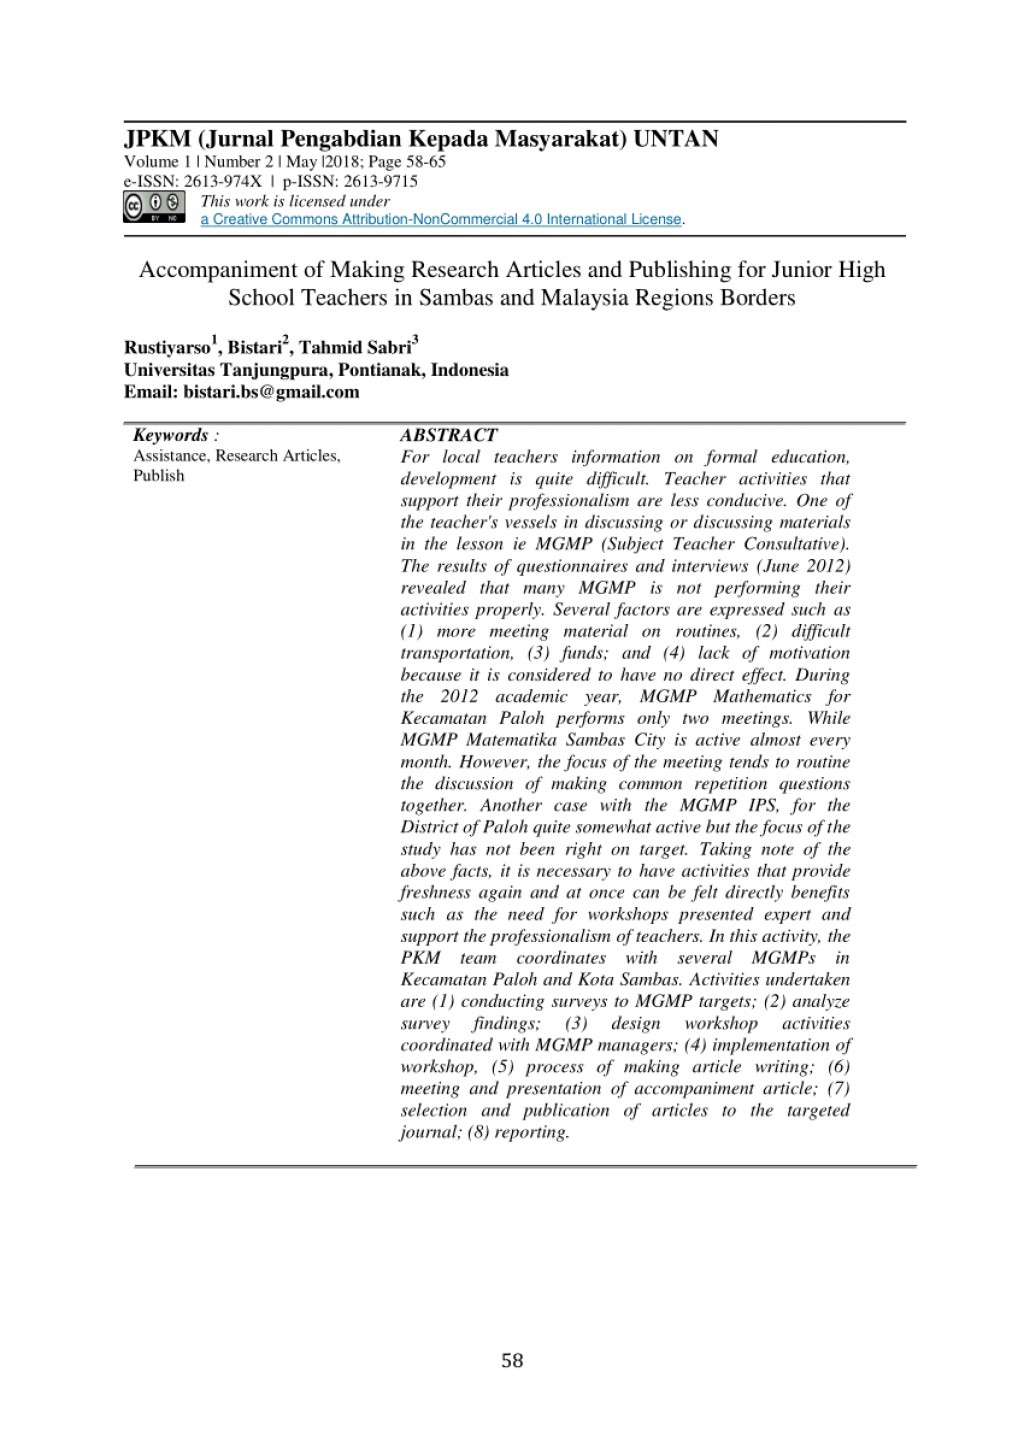 002 Research Paper How To Publish In High School Unusual A Large